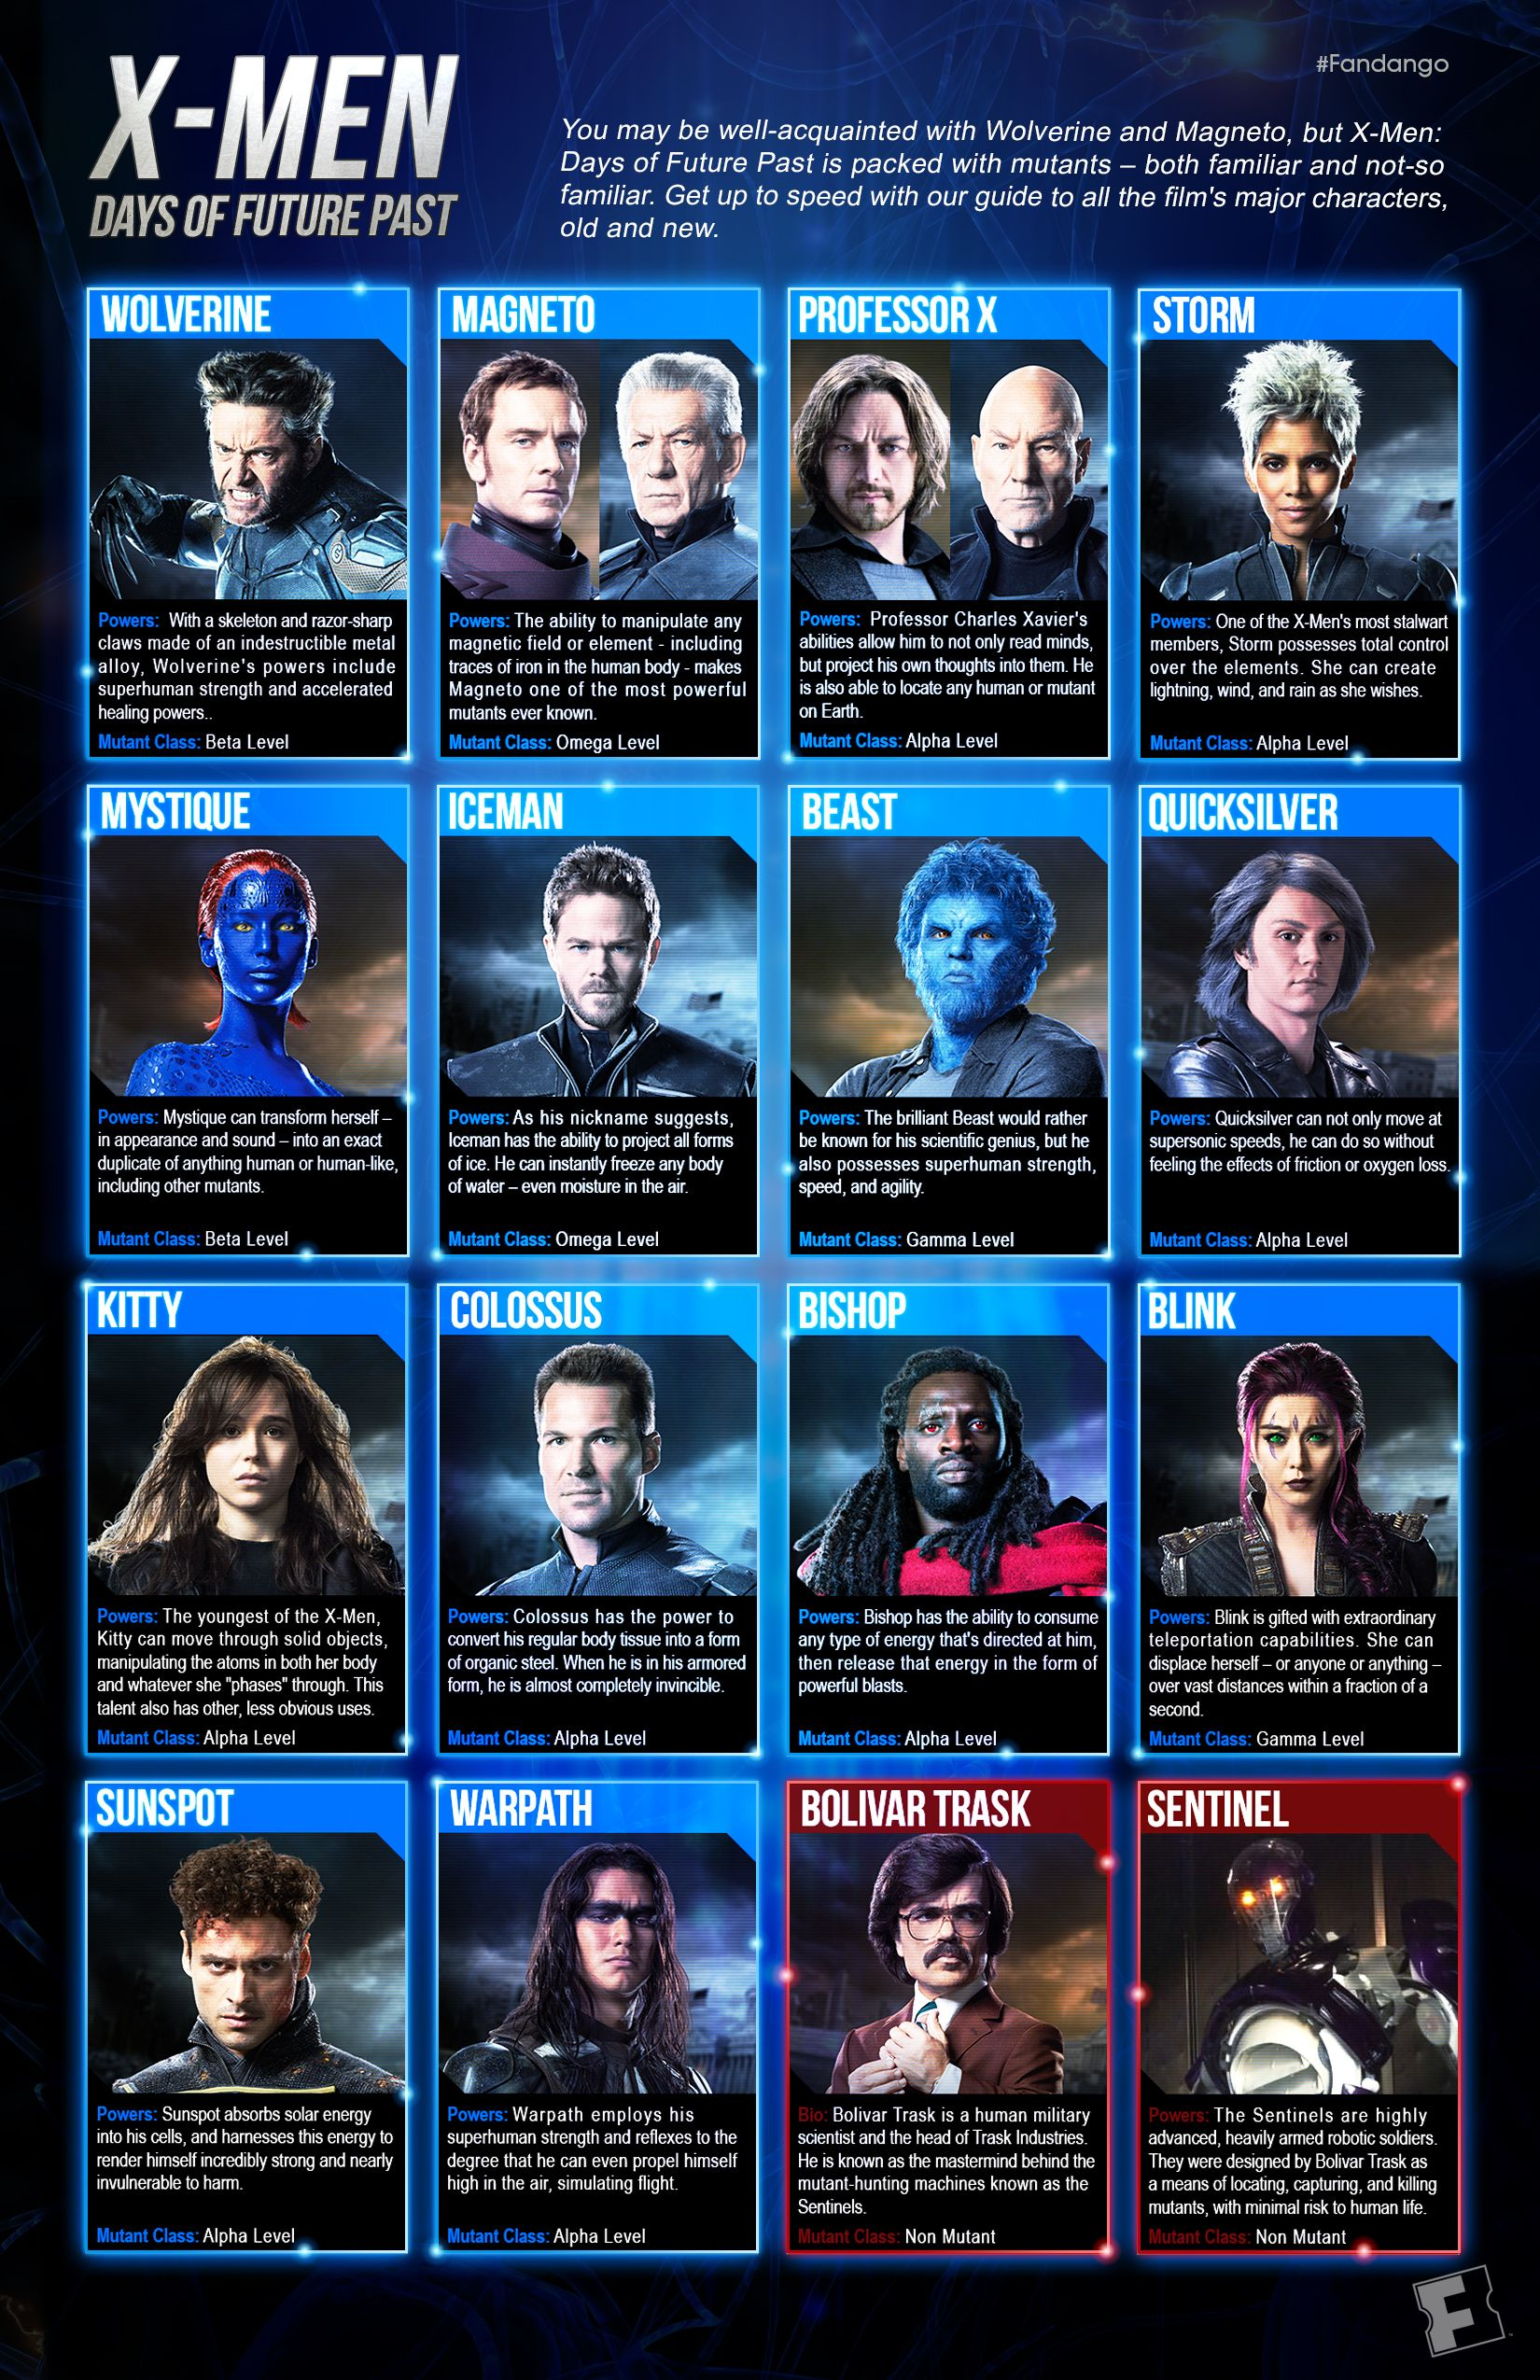 X men character list and powers